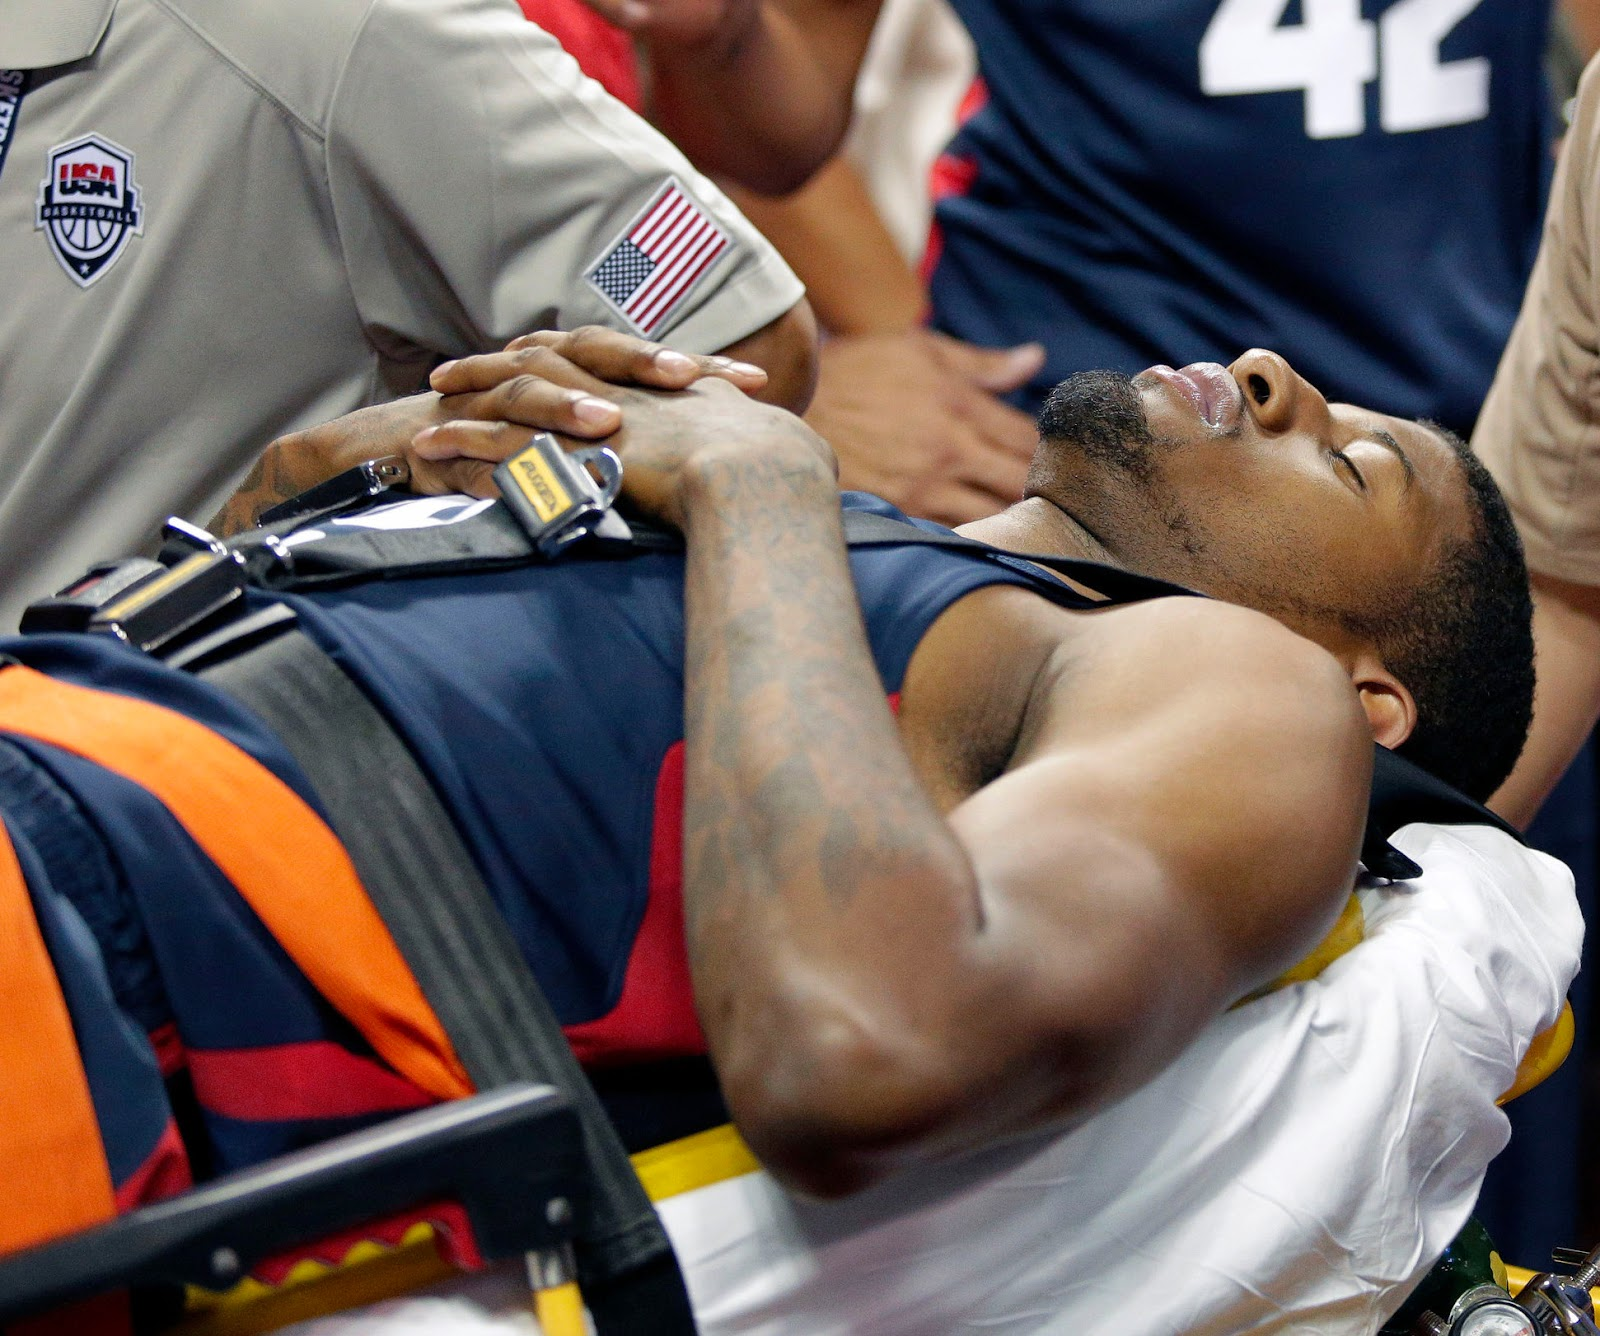 Onbloggers: Paul George's Injury Fuels Concerns in N.B.A ...